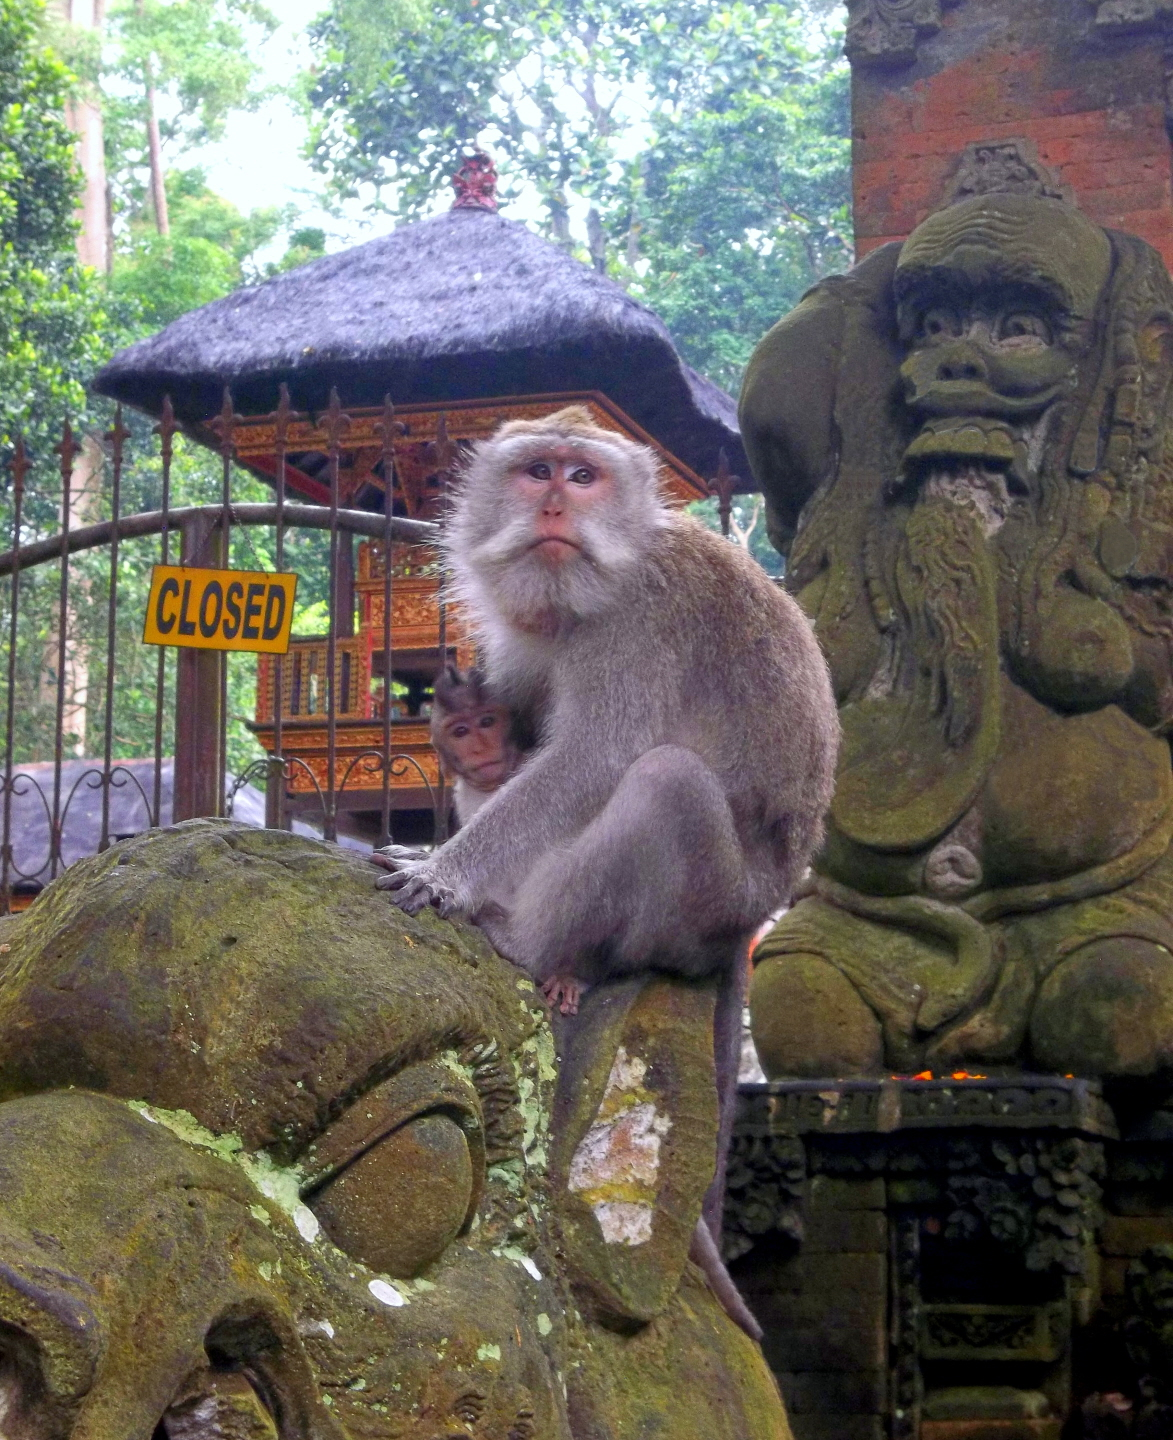 Monkey with Baby in Monkey Forest - Ubud, Bali - Indonesia